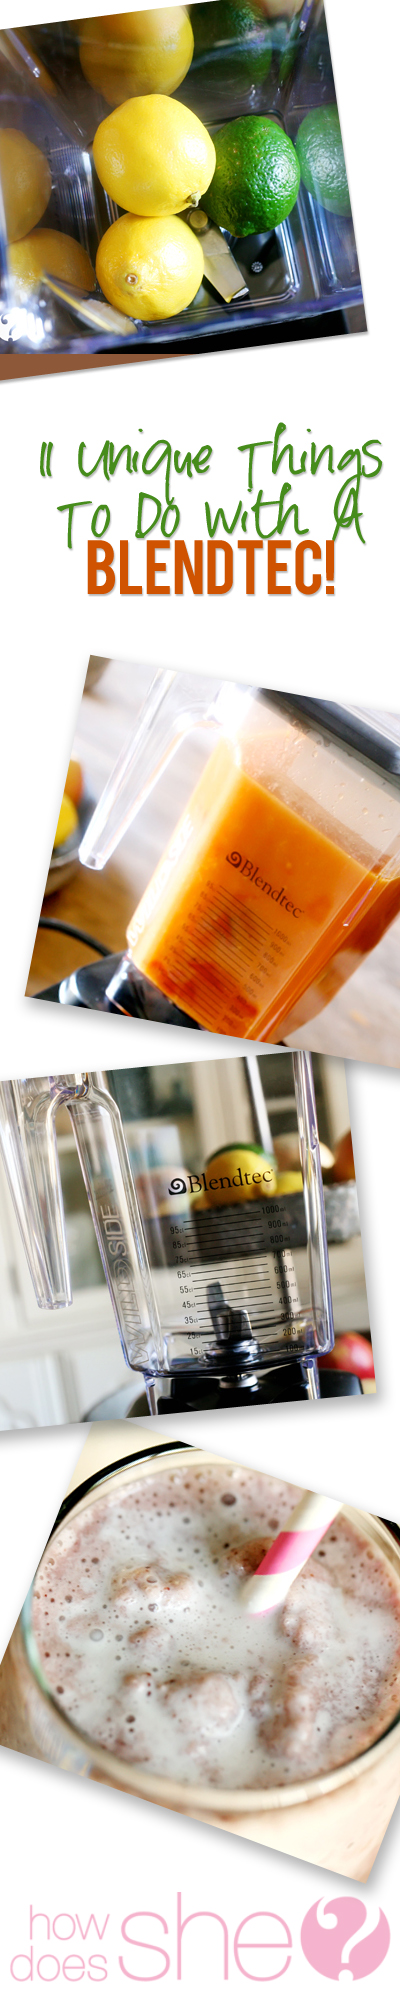 blendtec collage